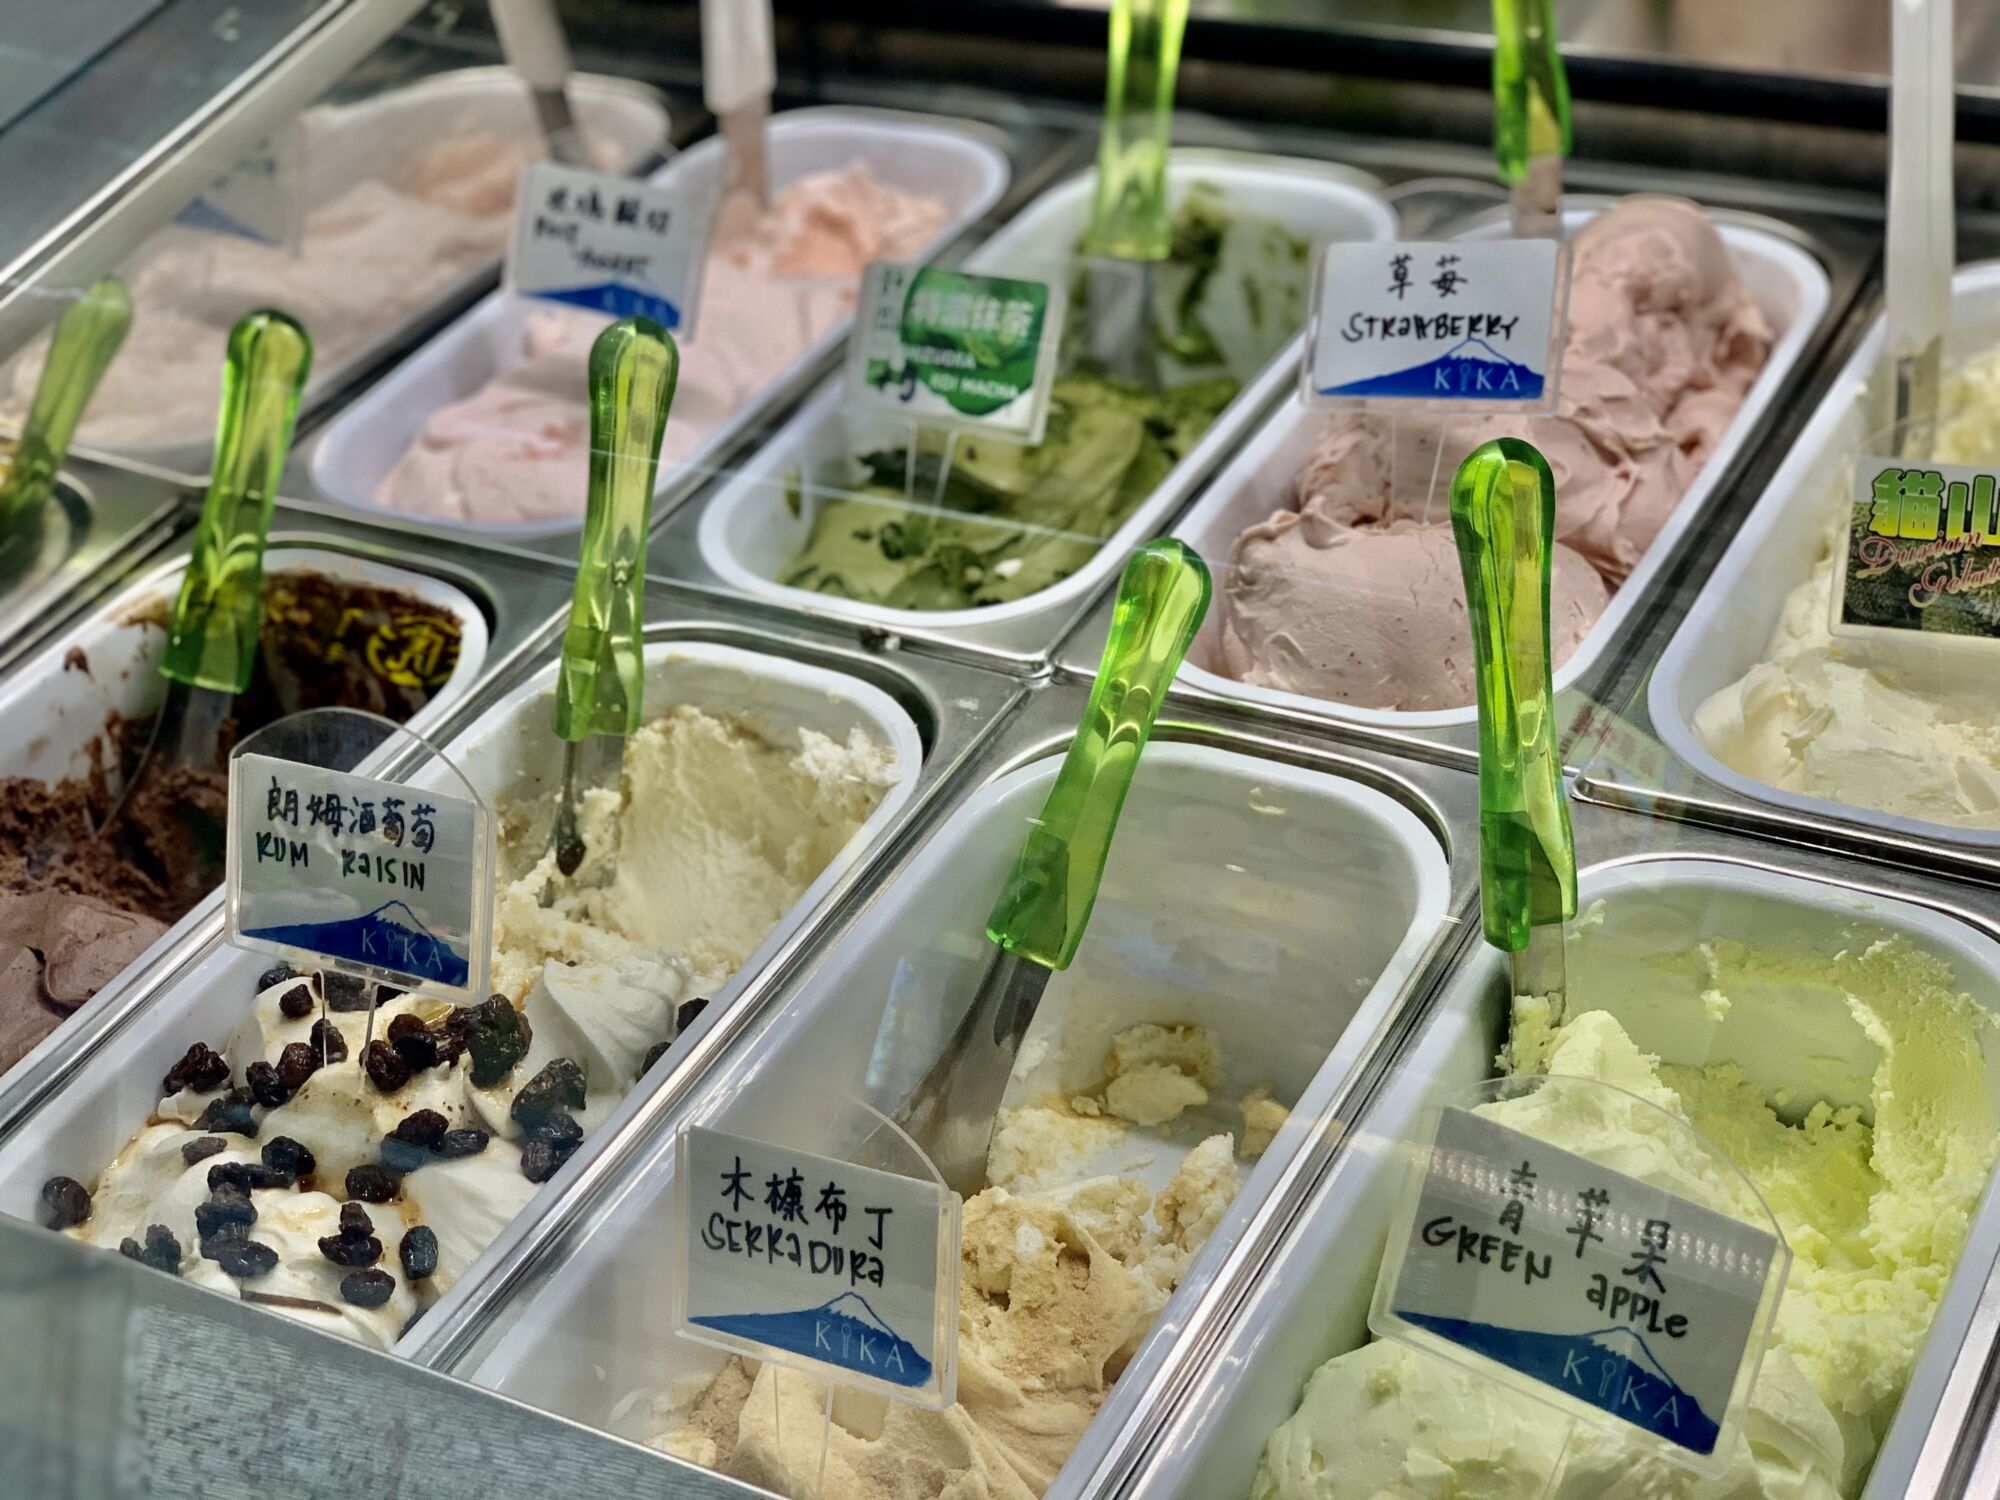 Kika Gelato Showroom Ice Creams Macau Lifestyle